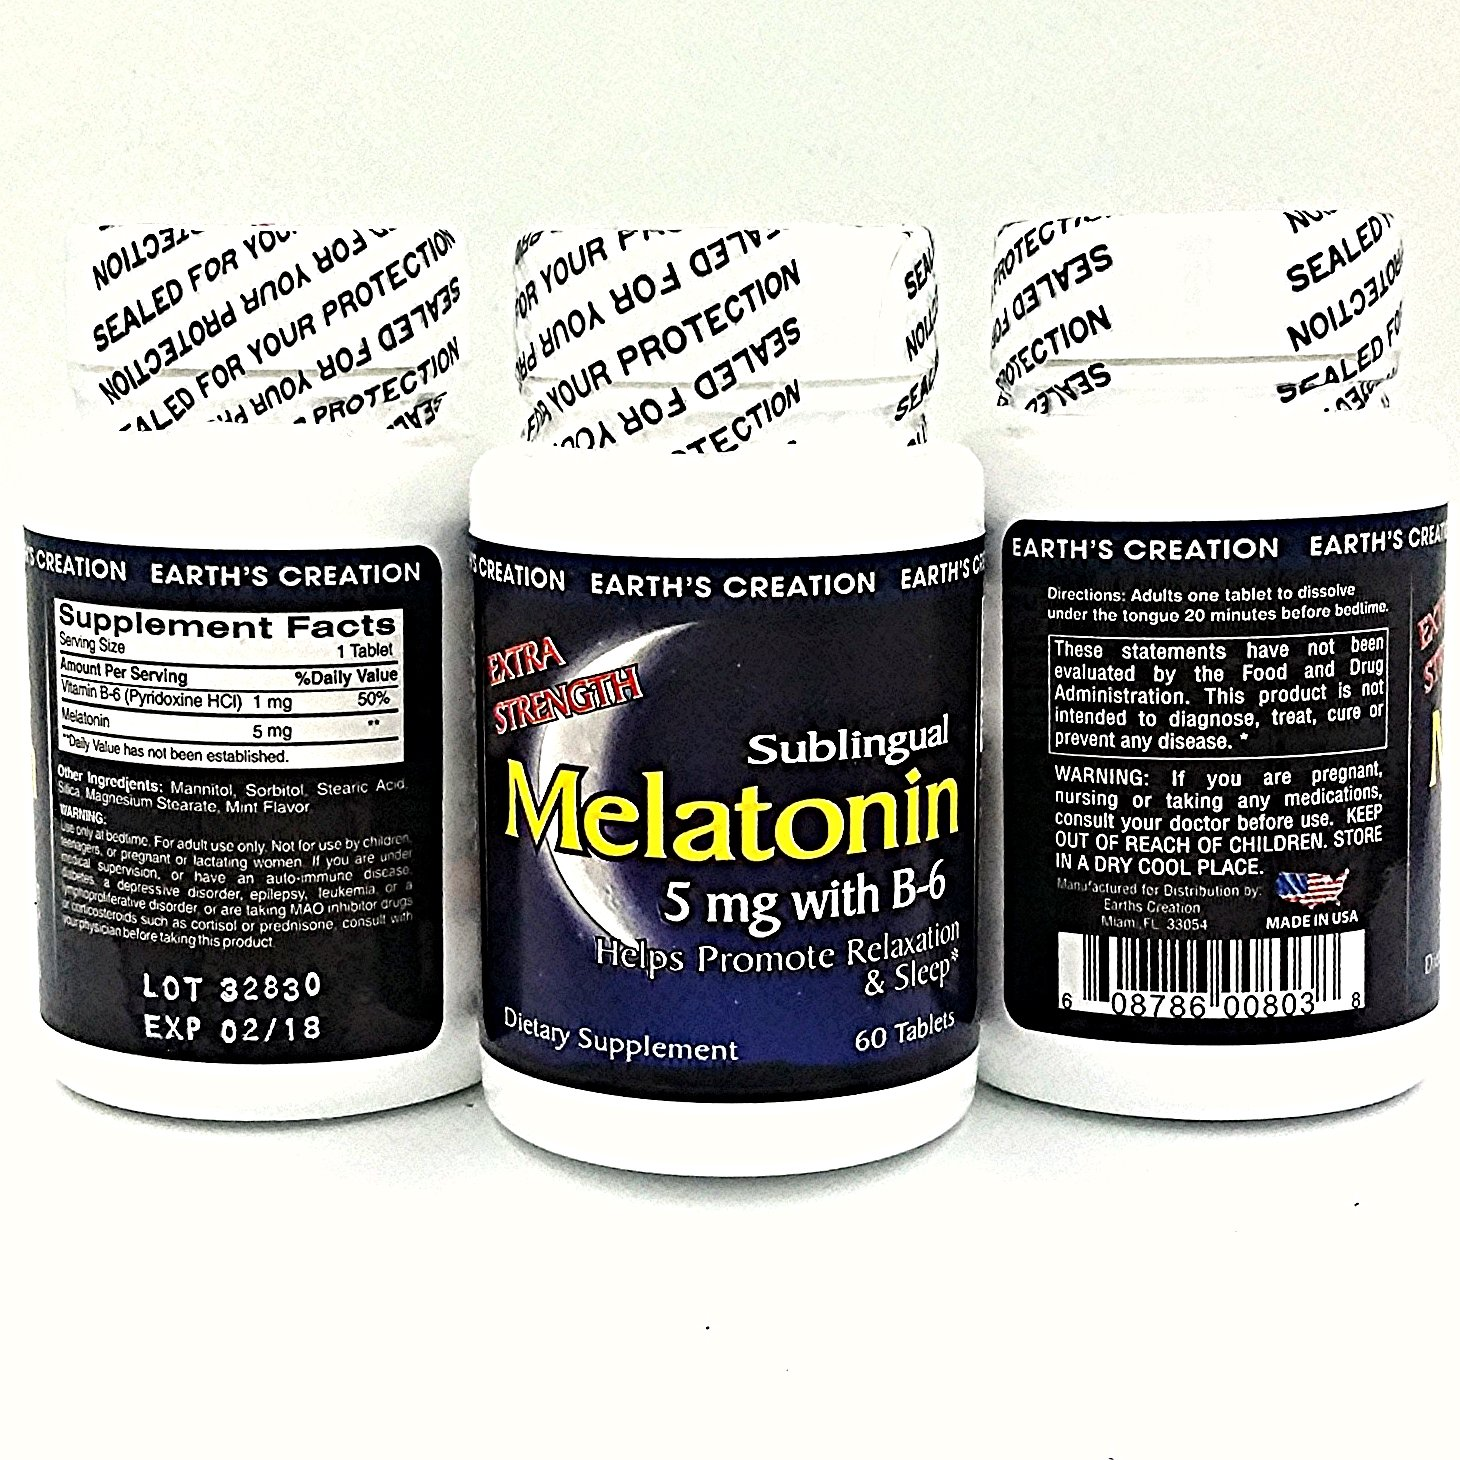 Amazon.com: Earths Creation Melatonin 5mg with B-6 - Natural sleep aid - 60 Tablets: Health & Personal Care